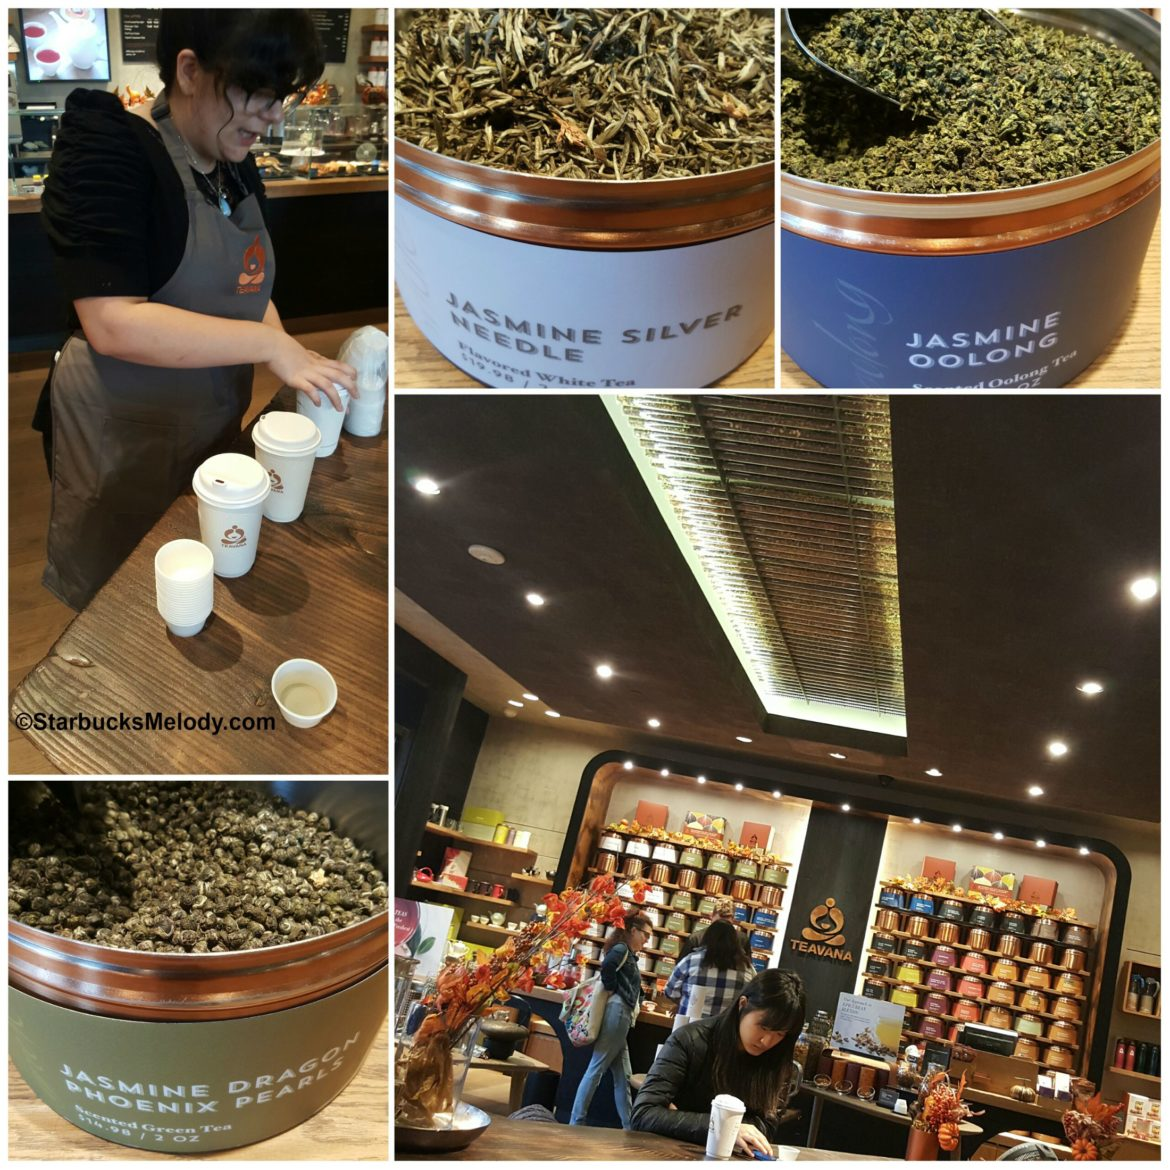 #TeavanaTuesday Tea Tastings Wednesdays at 6 PM at University Village Teavana.